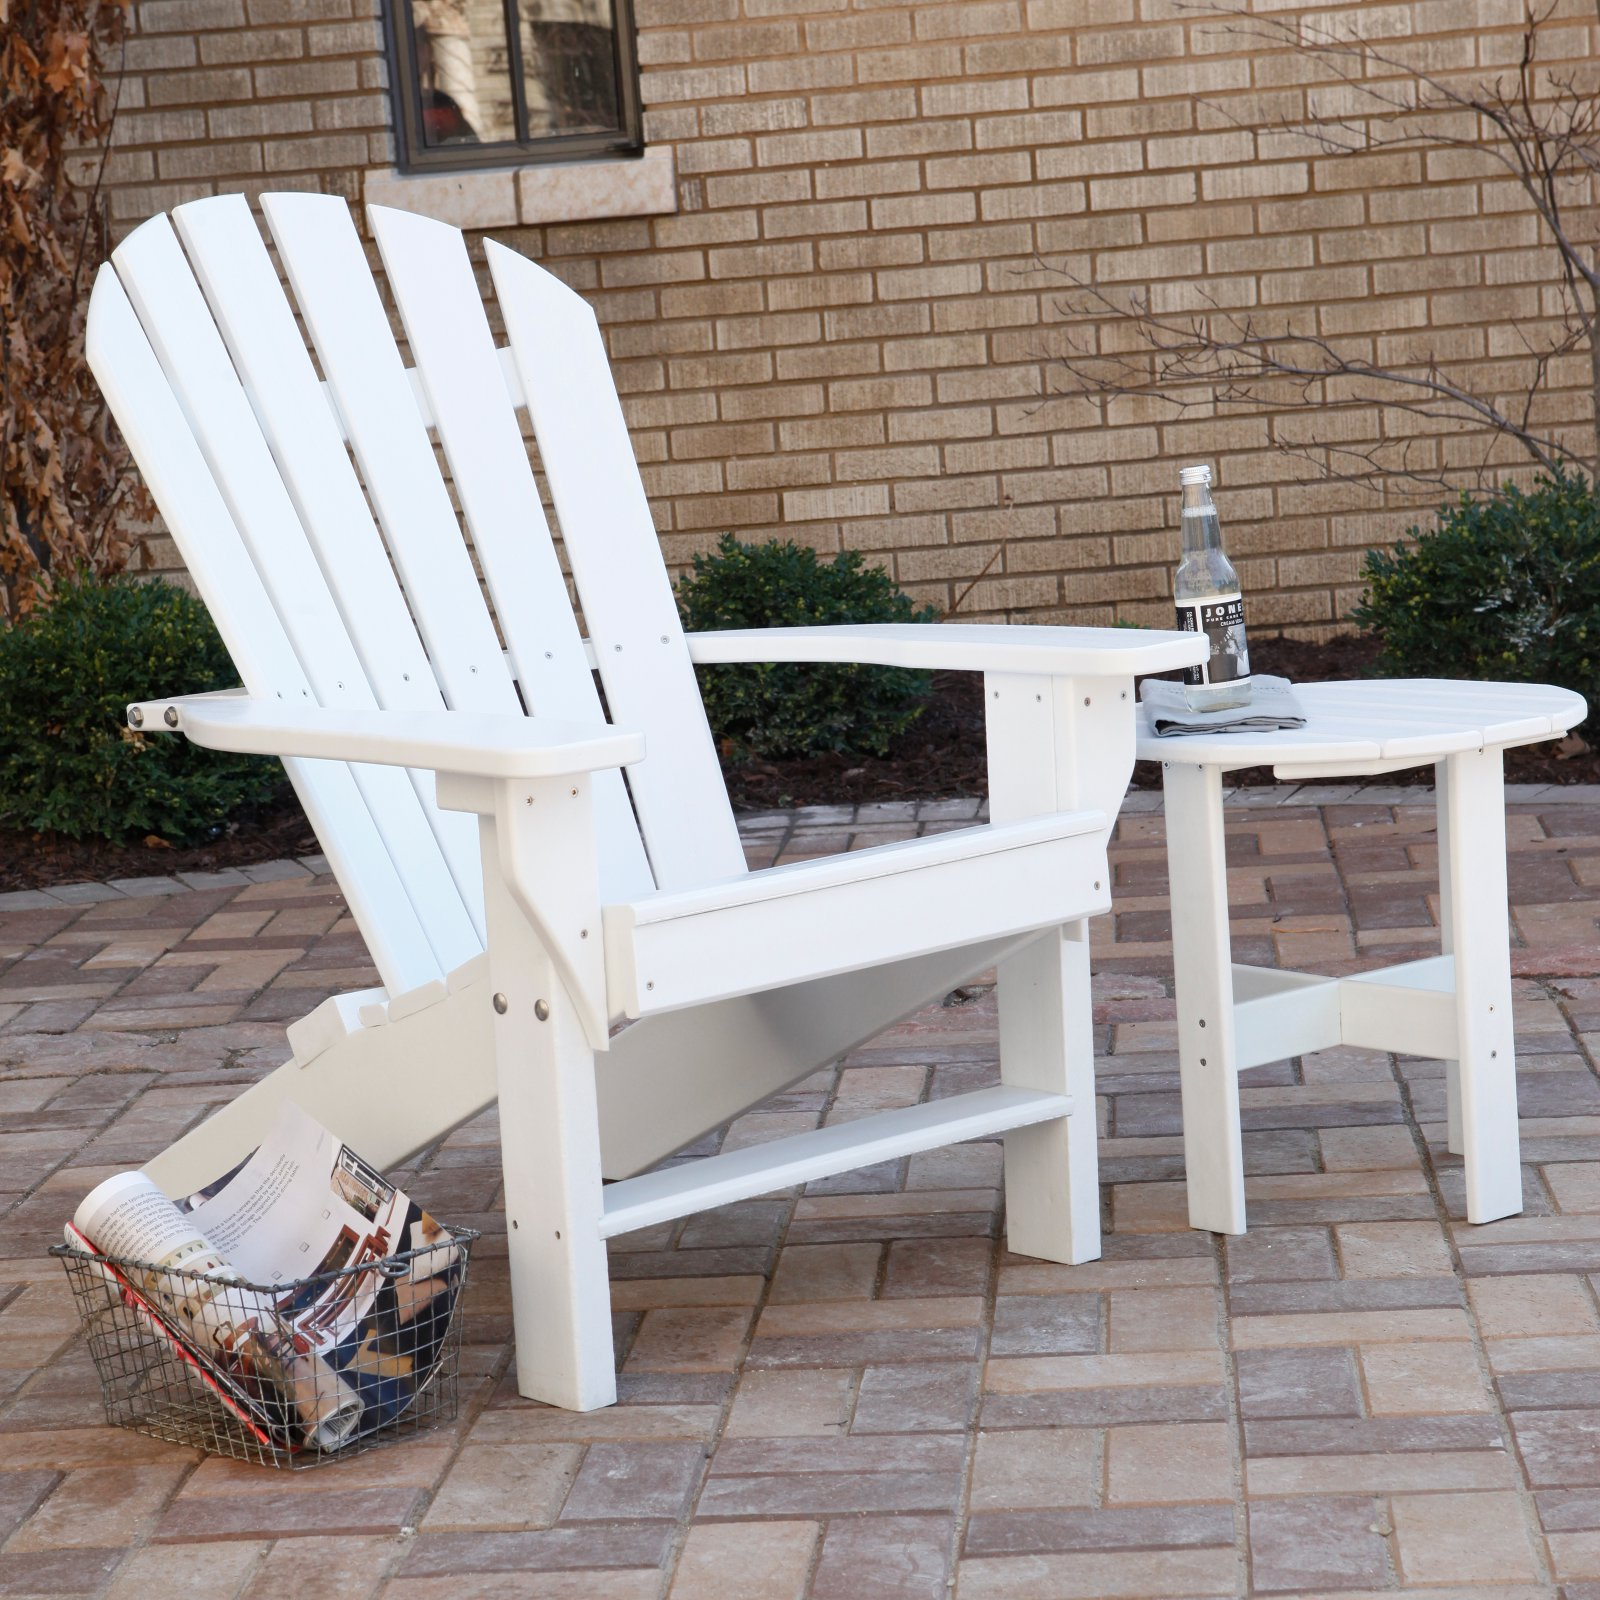 Jayhawk Plastics Recycled Plastic Seaside Adirondack Chair With Side Table